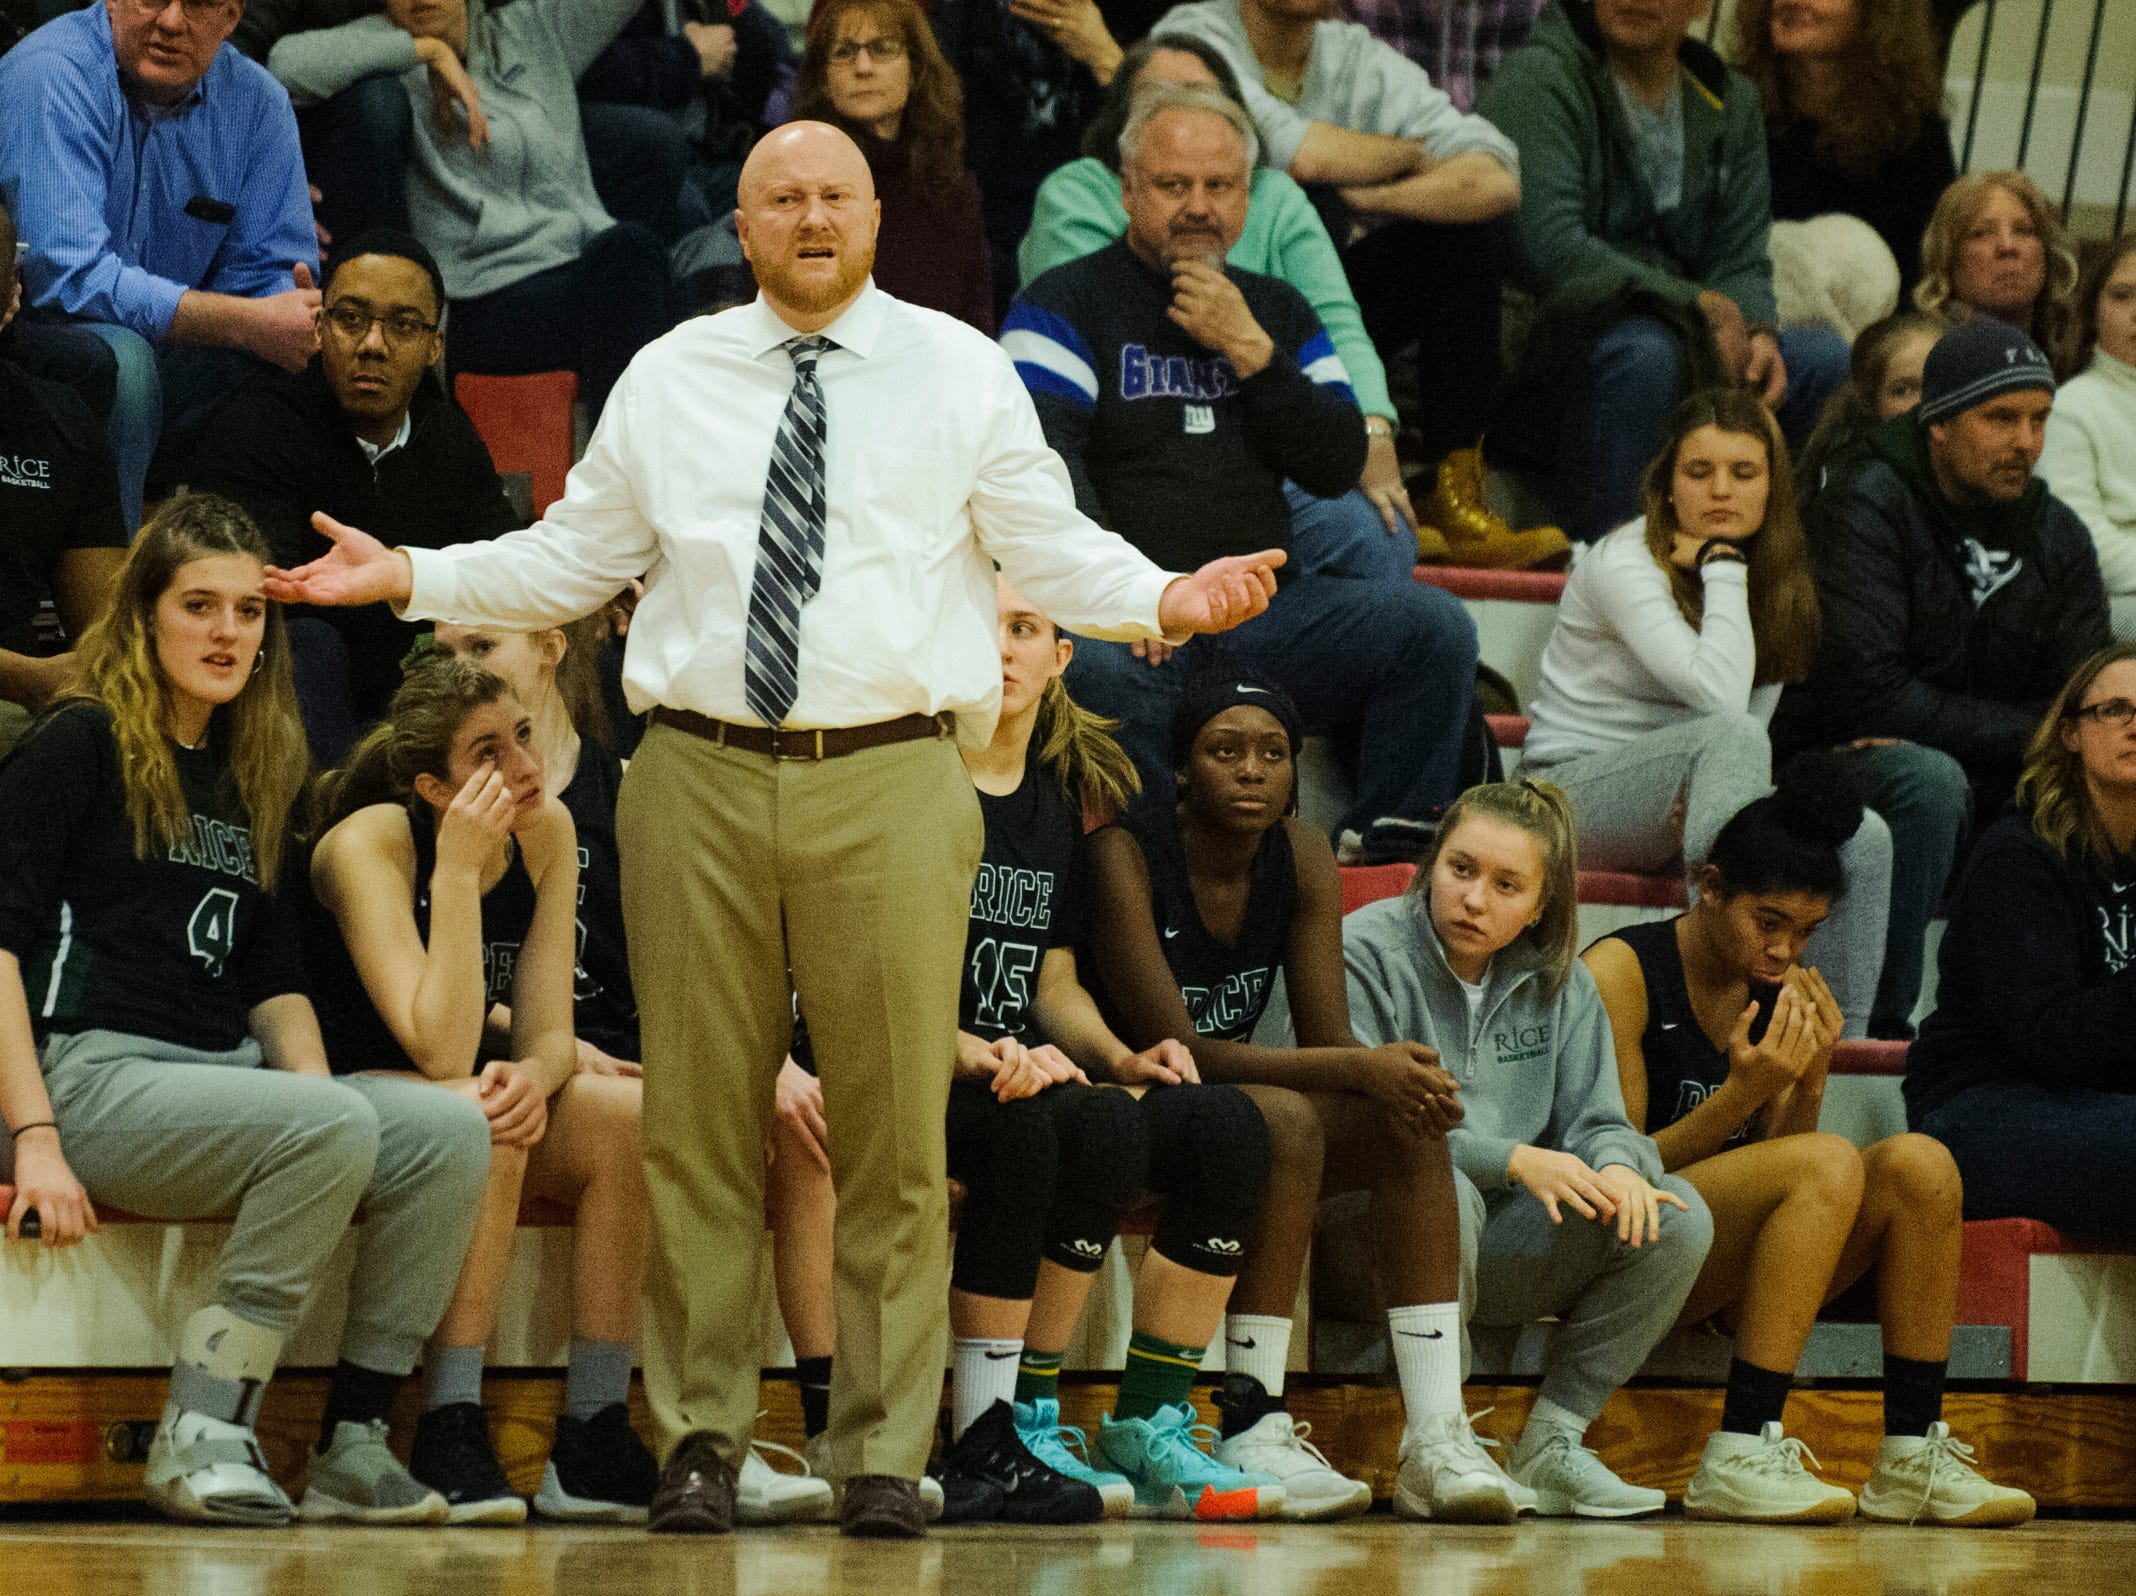 Rice head coach Aurie Thibault questions a call on the court during high school girls basketball game between the Rice Green Knights and the Champlain Valley Union Redhawks at CVU High School on Friday night January 11, 2019 in Hinesburg.